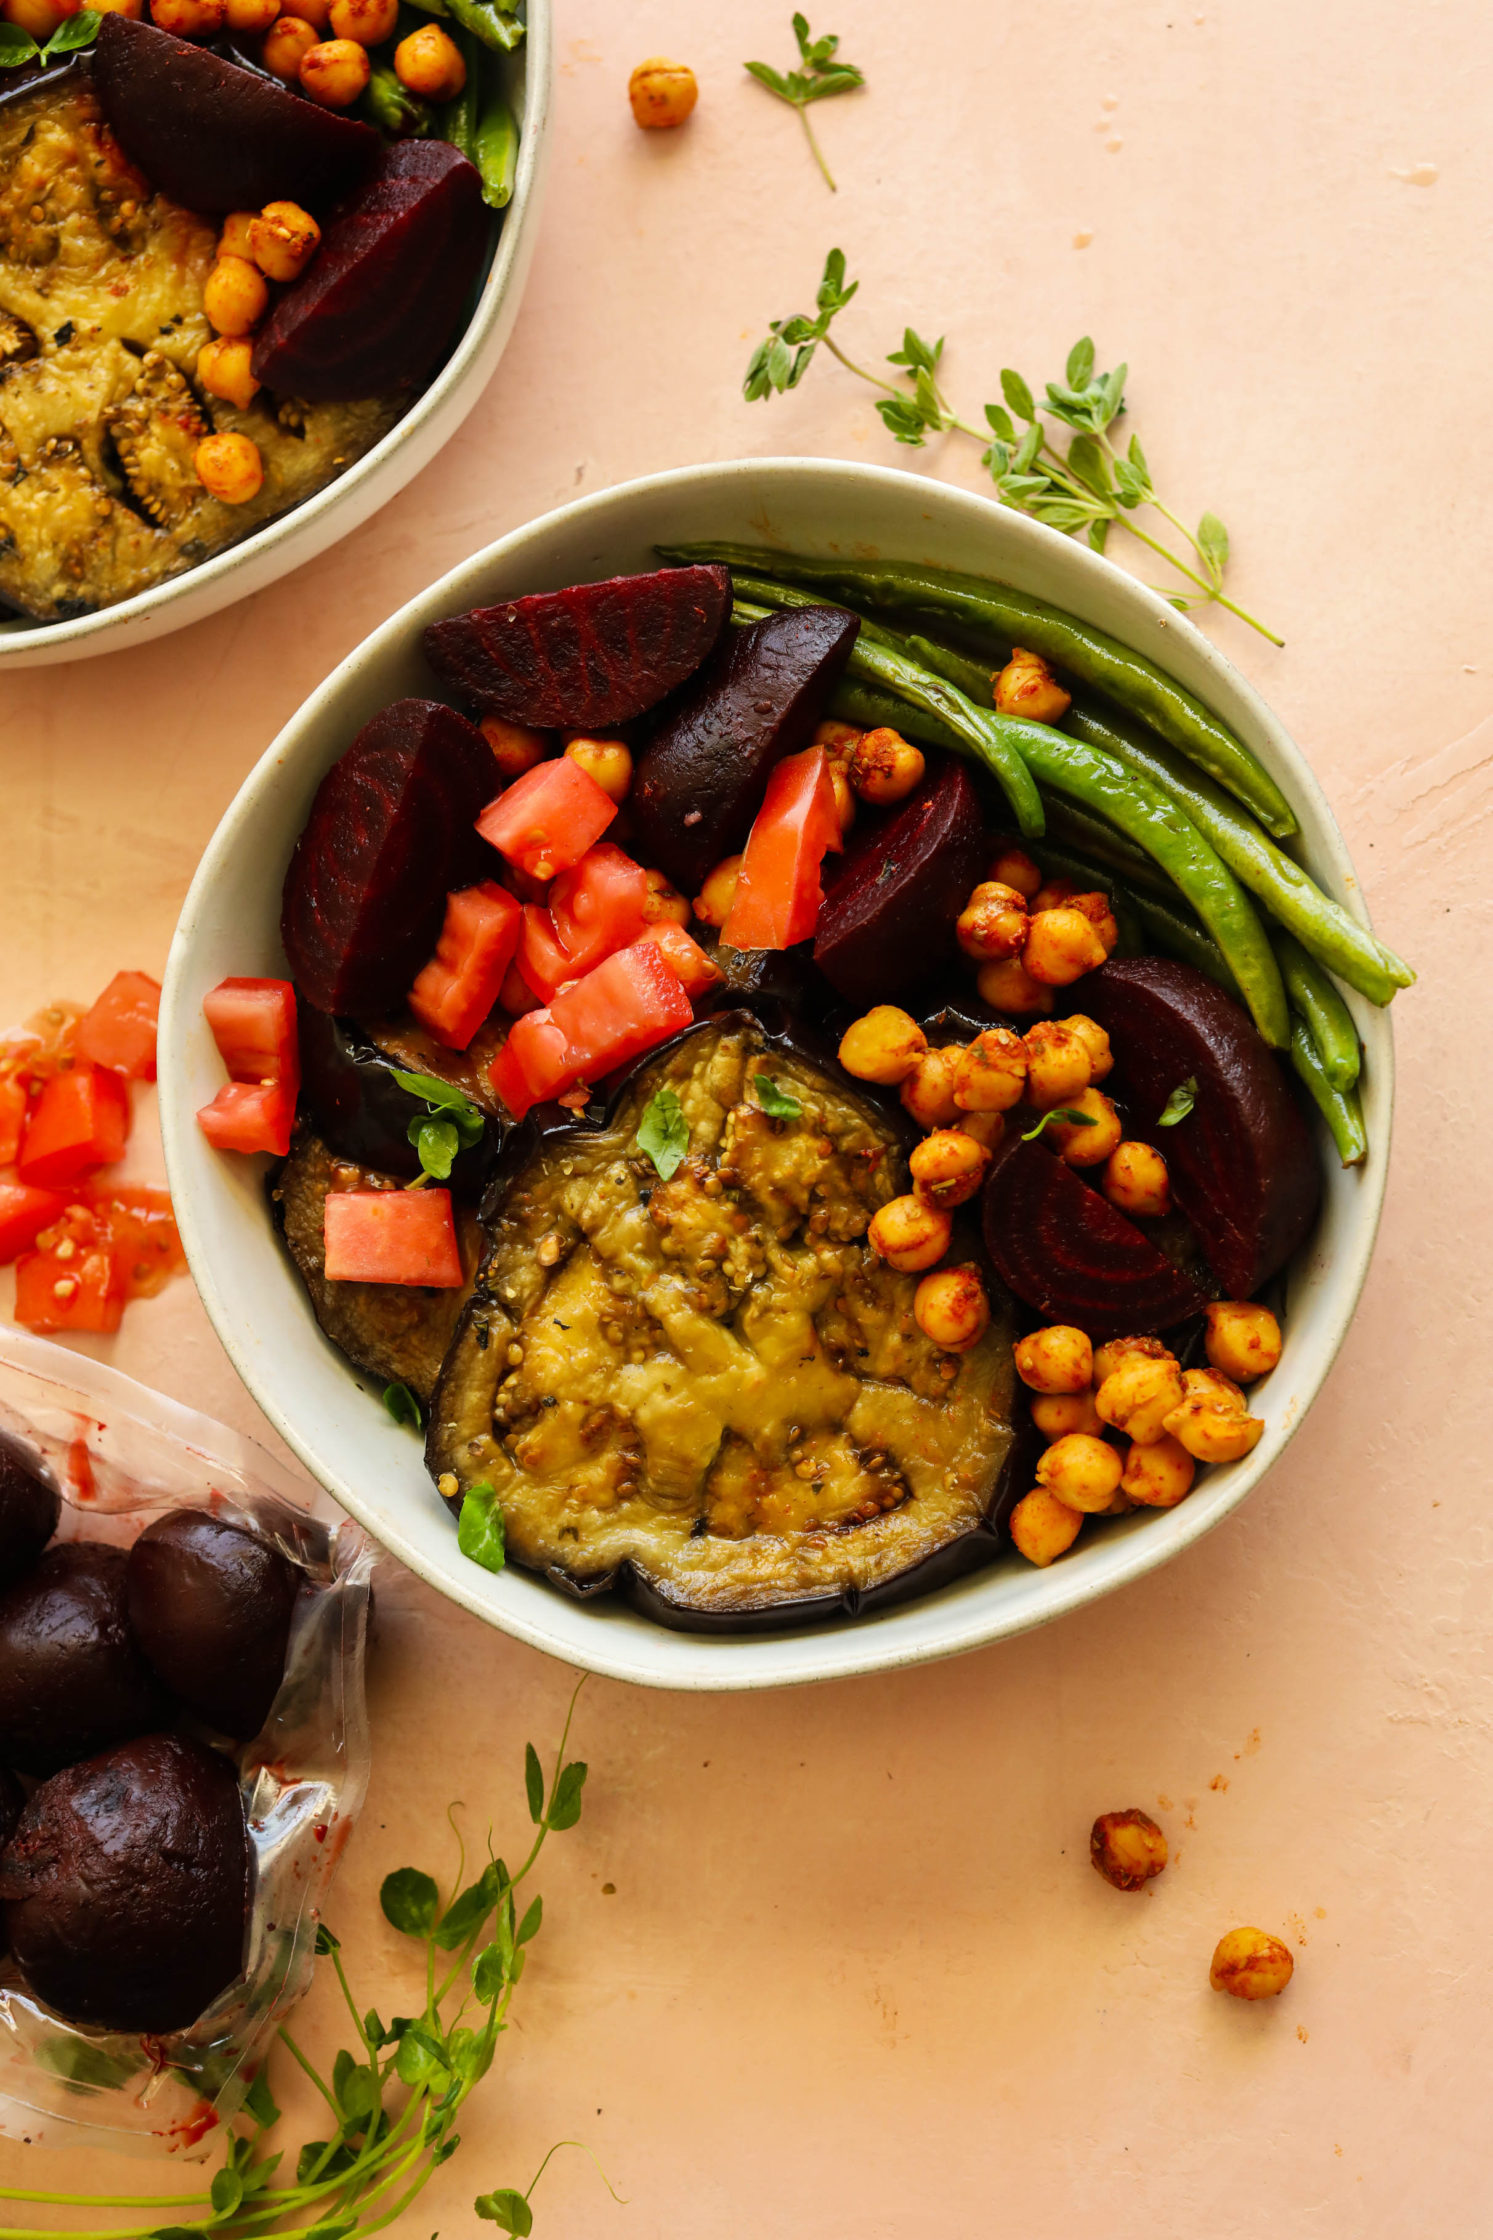 Baked Eggplant Steaks with Spiced Chickpeas, Beets, & Green Beans